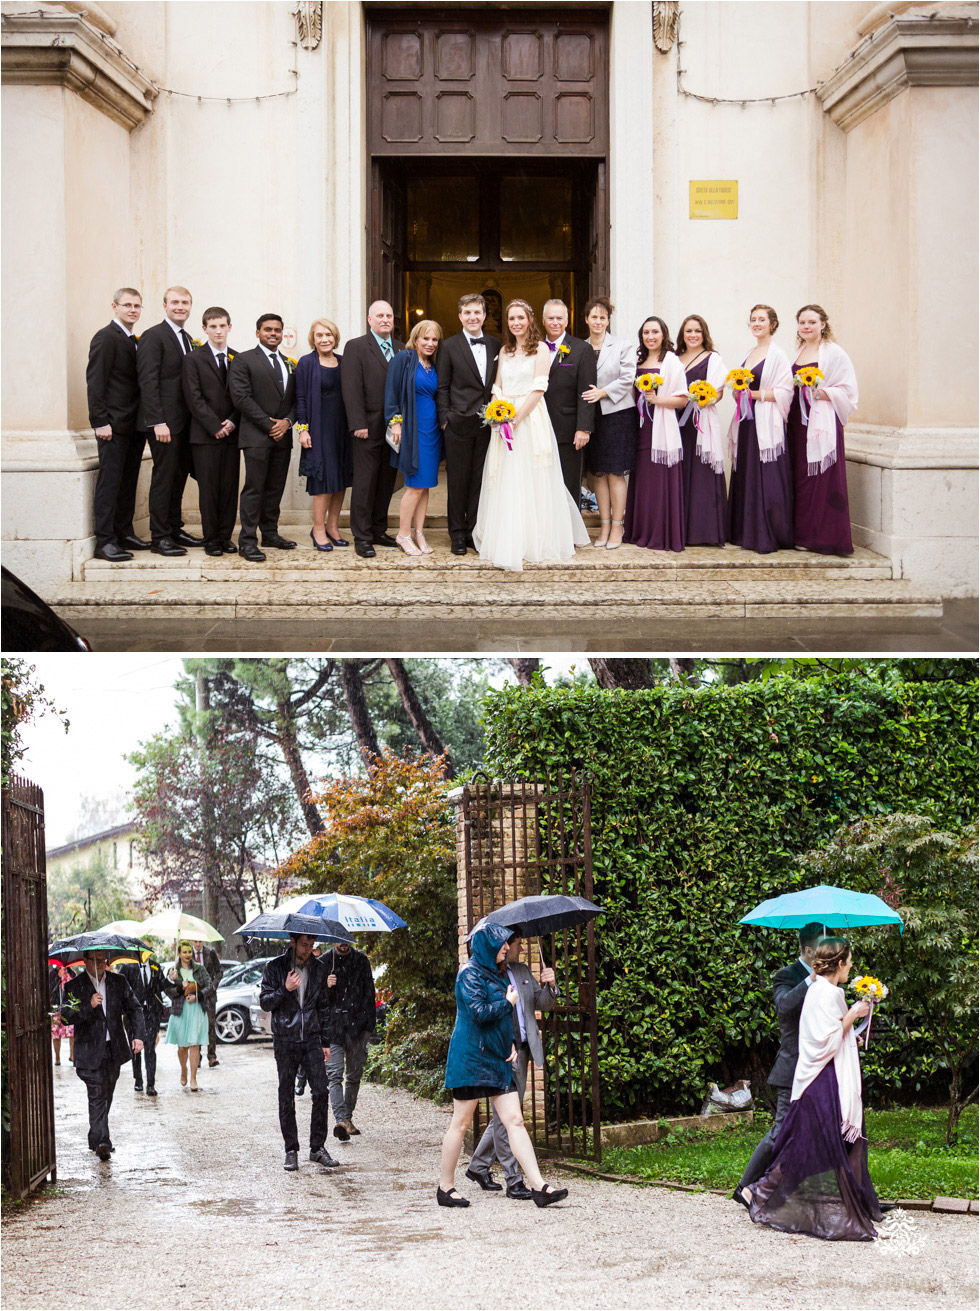 Wedding party at church and arriving at the venue Villa Damiani, a 400+ year old home in the country side of Bassano del Grappa, Italy - Blog of Nina Hintringer Photography - Wedding Photography, Wedding Reportage and Destination Weddings